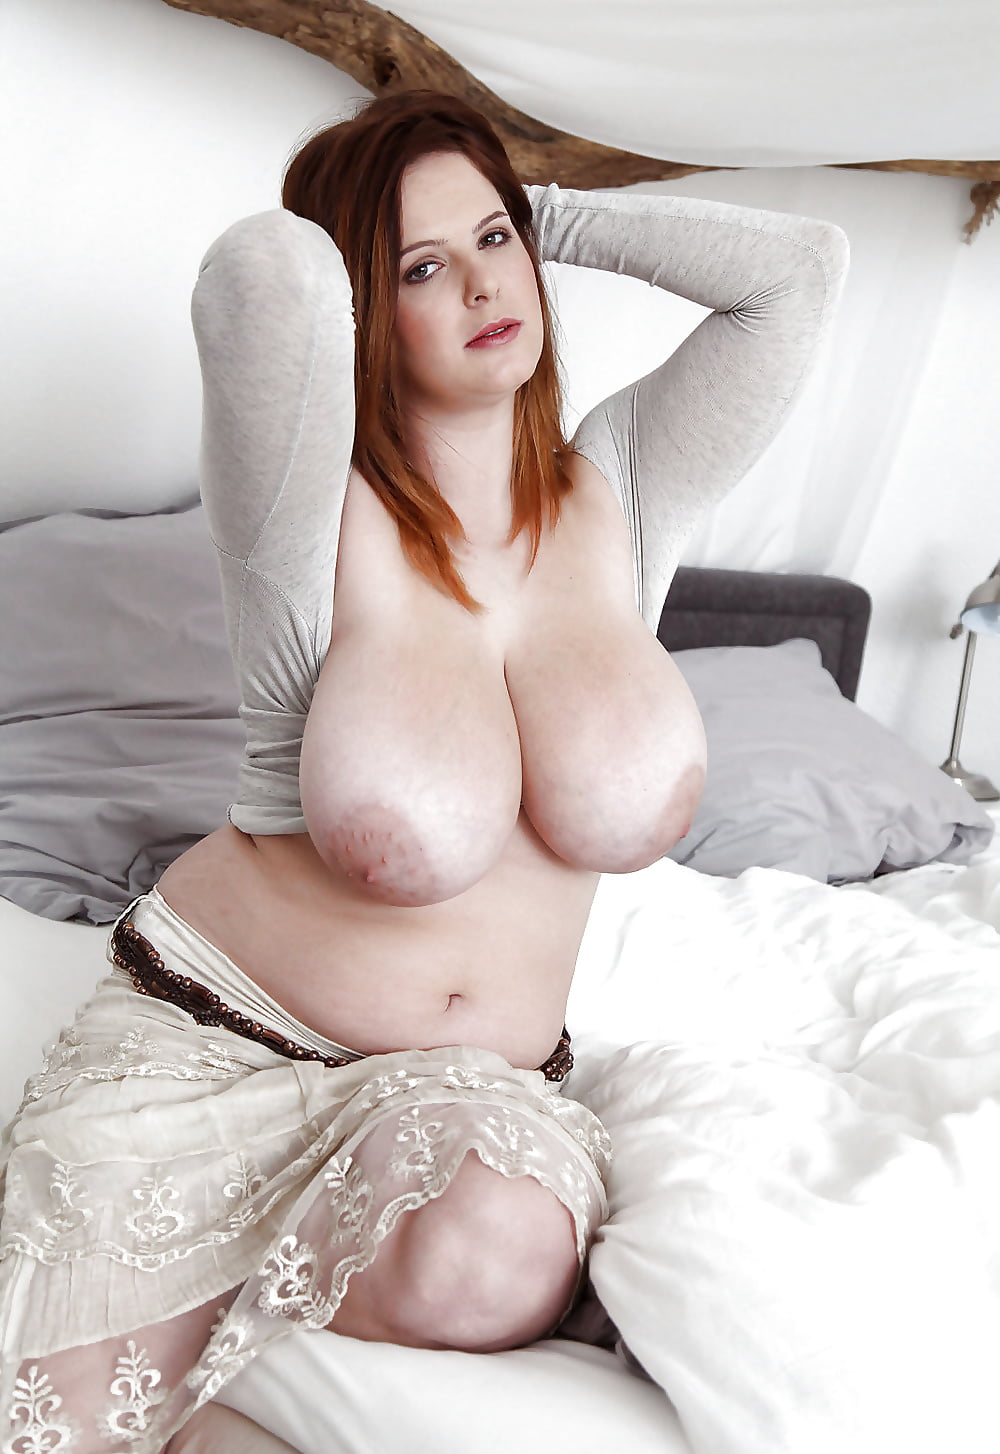 Busty nadine j with big naturals wearing corset